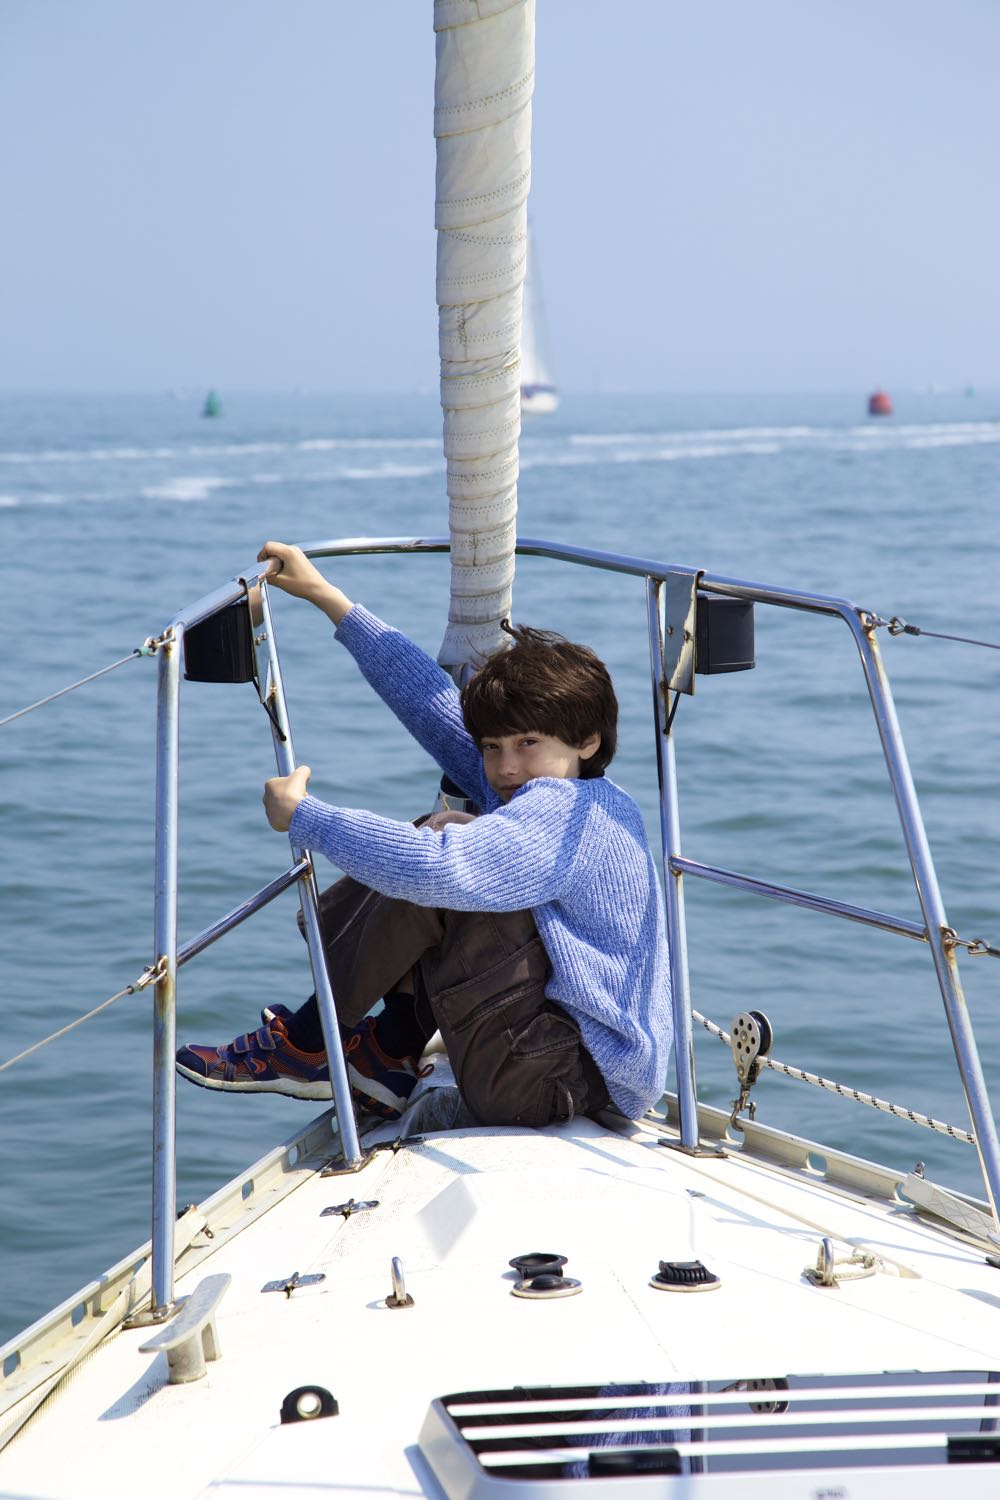 Young boy on a sailing boat.